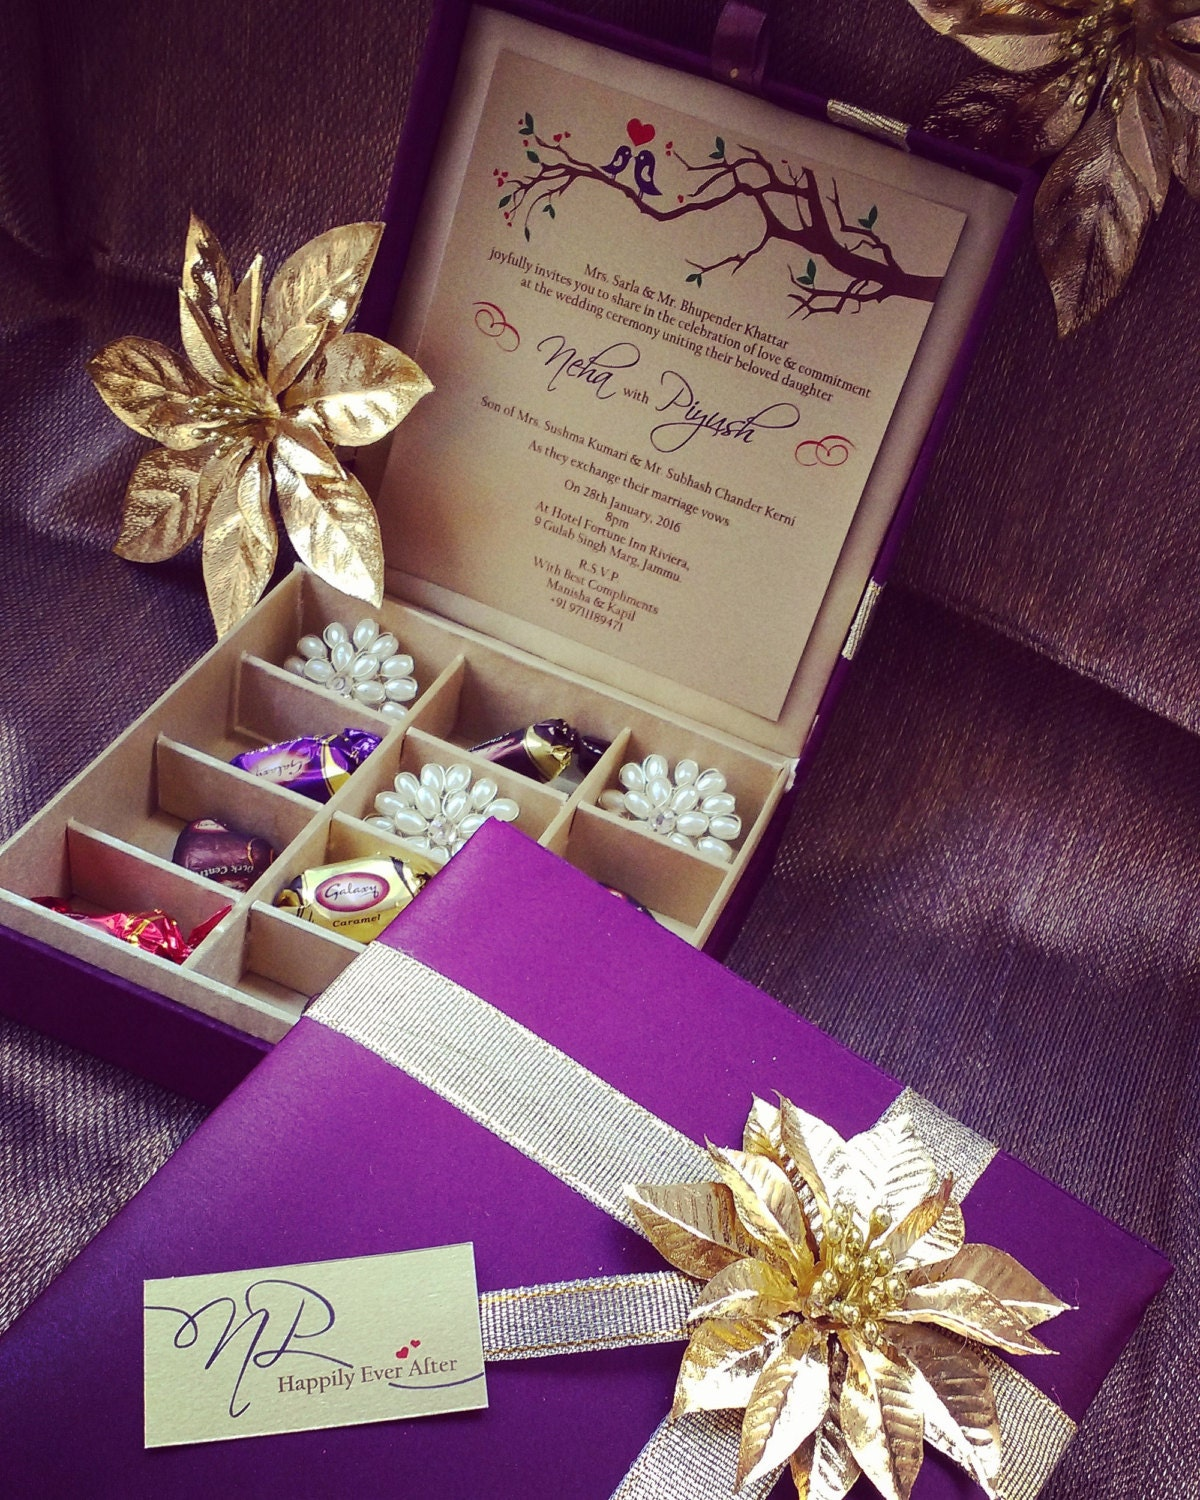 Wedding Planner Gift Box : Chocolate Box Gift Box Wedding Invitation Box